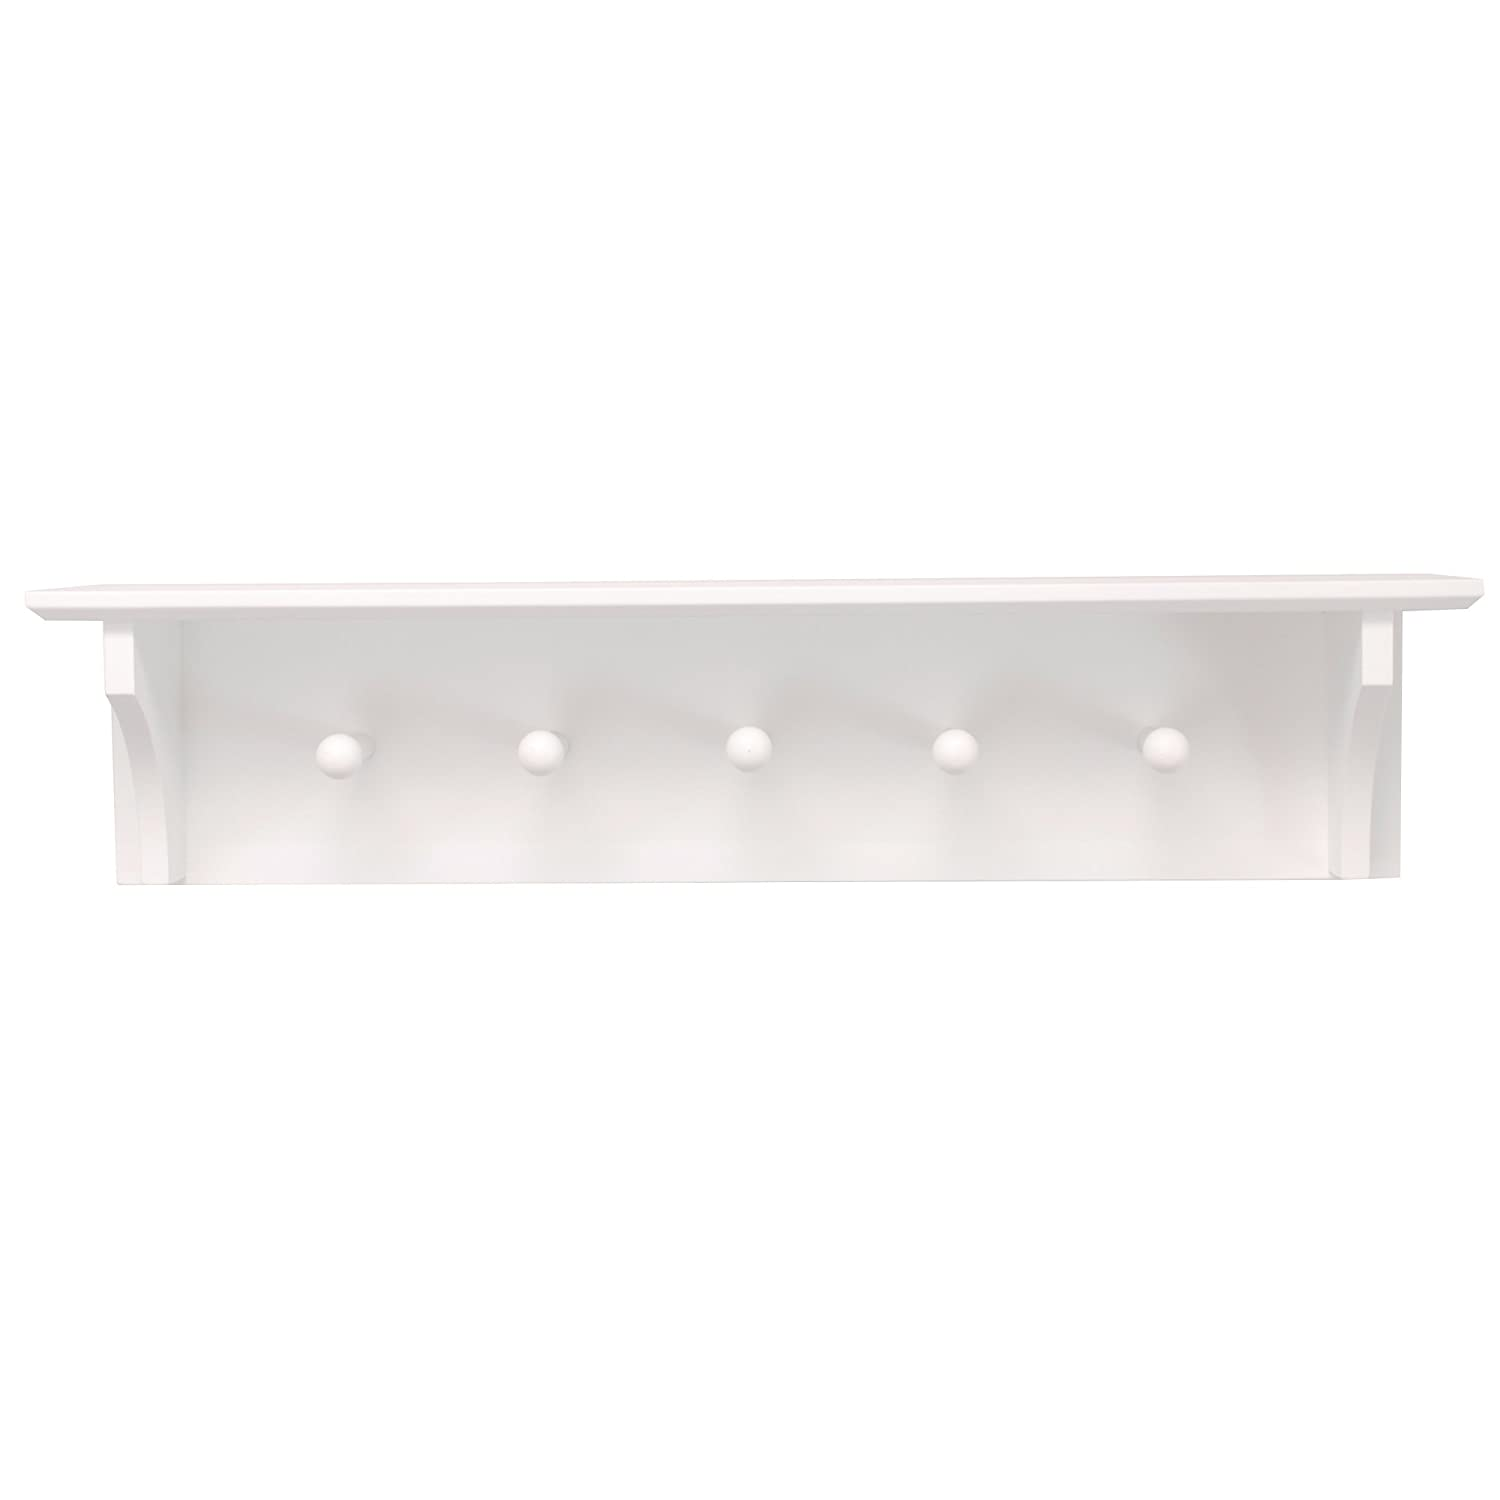 nexxt Foster Wall Shelf with 5 Pegs, 24-Inch by 5.5-Inch, White FN00381-2INT